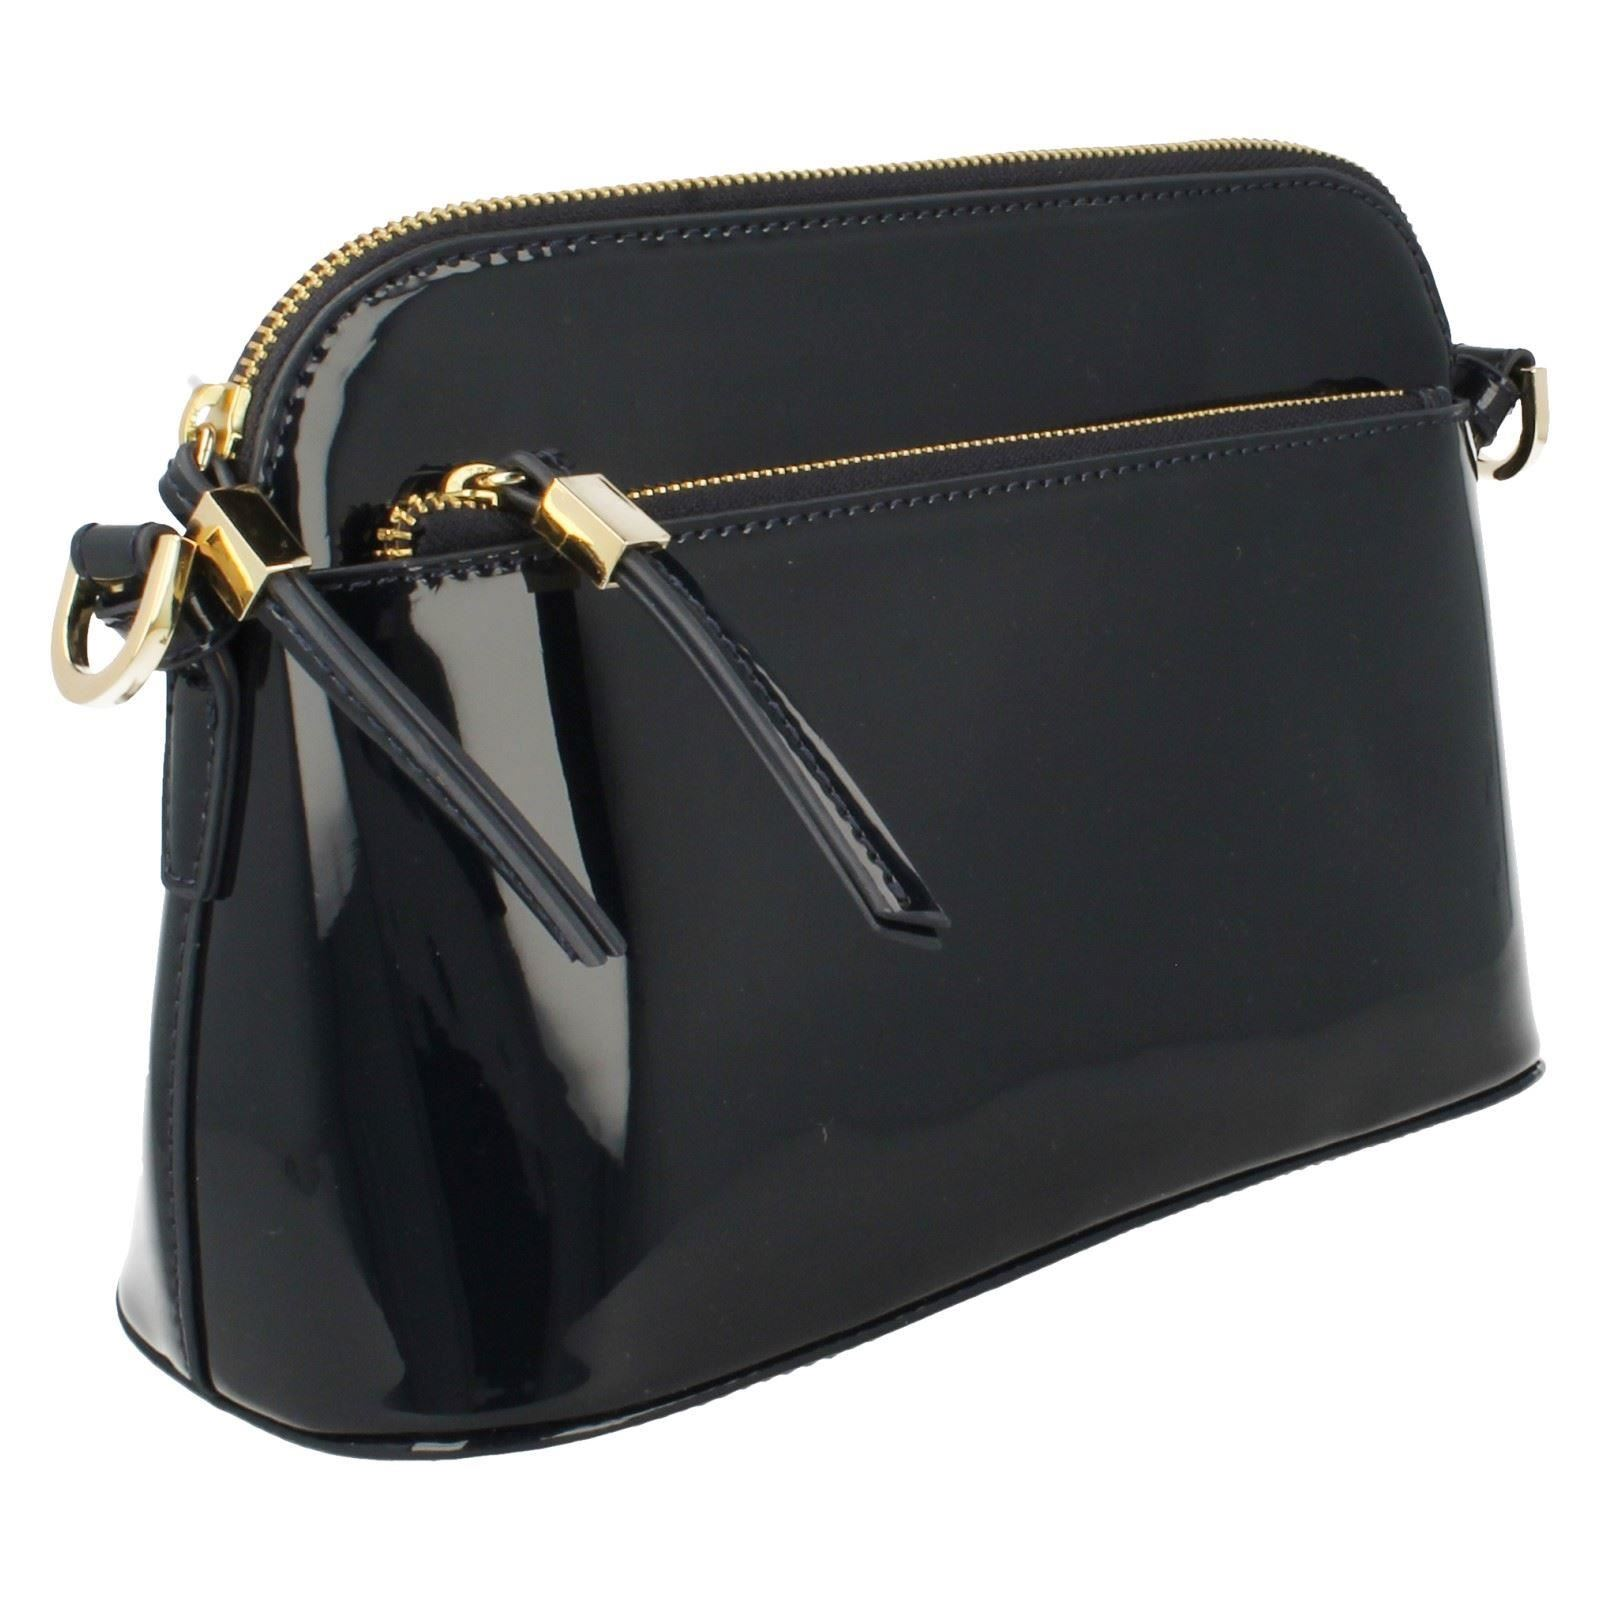 ladies clarks occasion wear cross body bags misterton chic. Black Bedroom Furniture Sets. Home Design Ideas